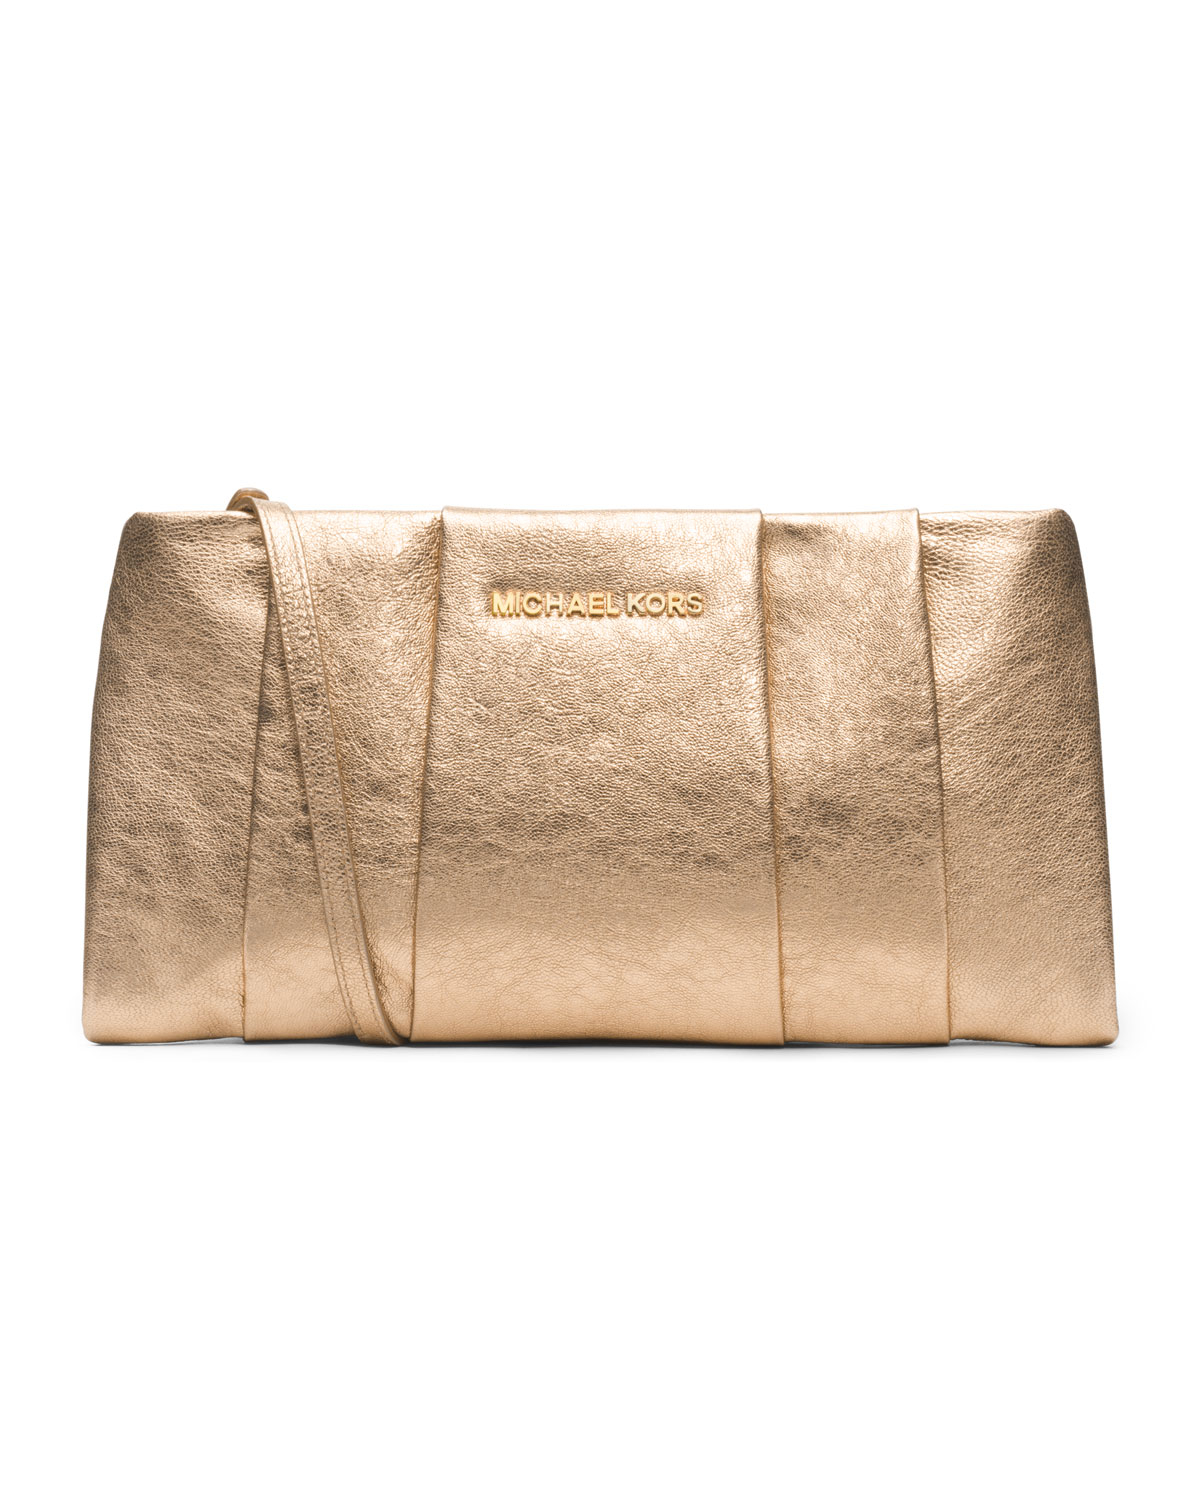 michael kors michael daria metallic clutch in gold pale gold lyst